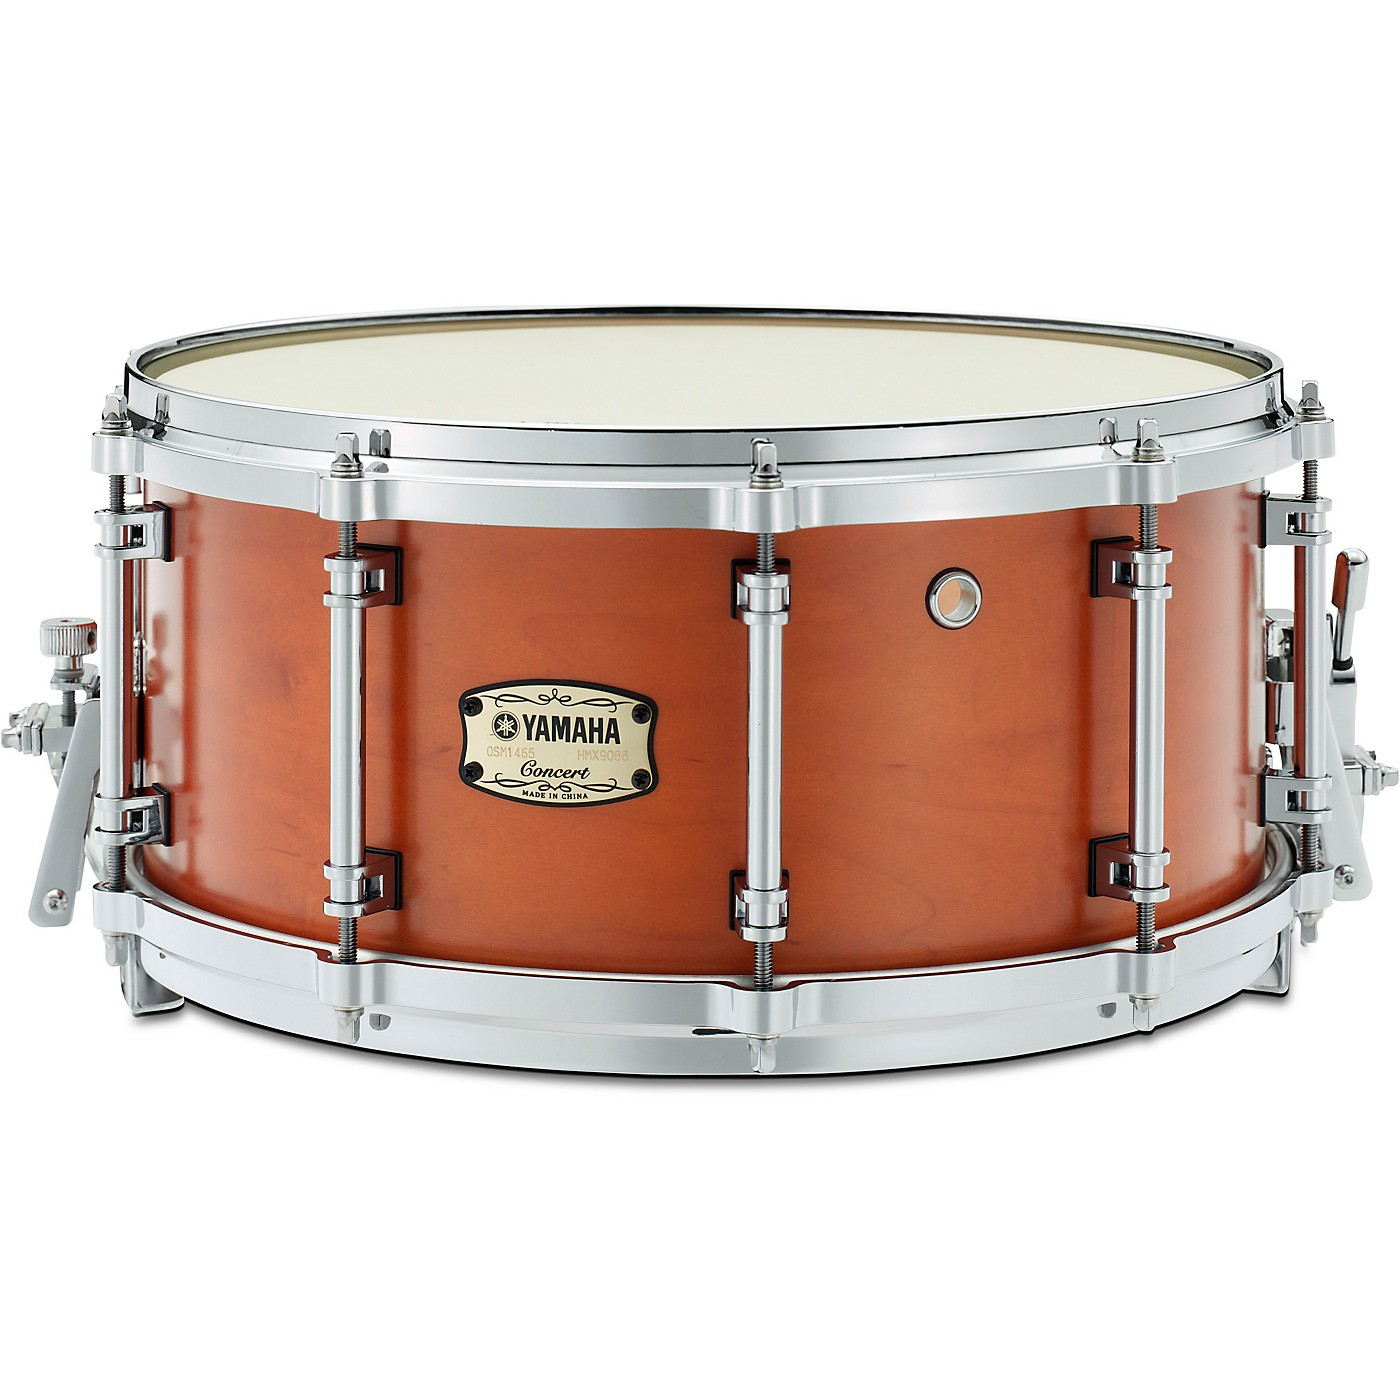 Yamaha Orchestral Concert Series Maple Snare Drum thumbnail